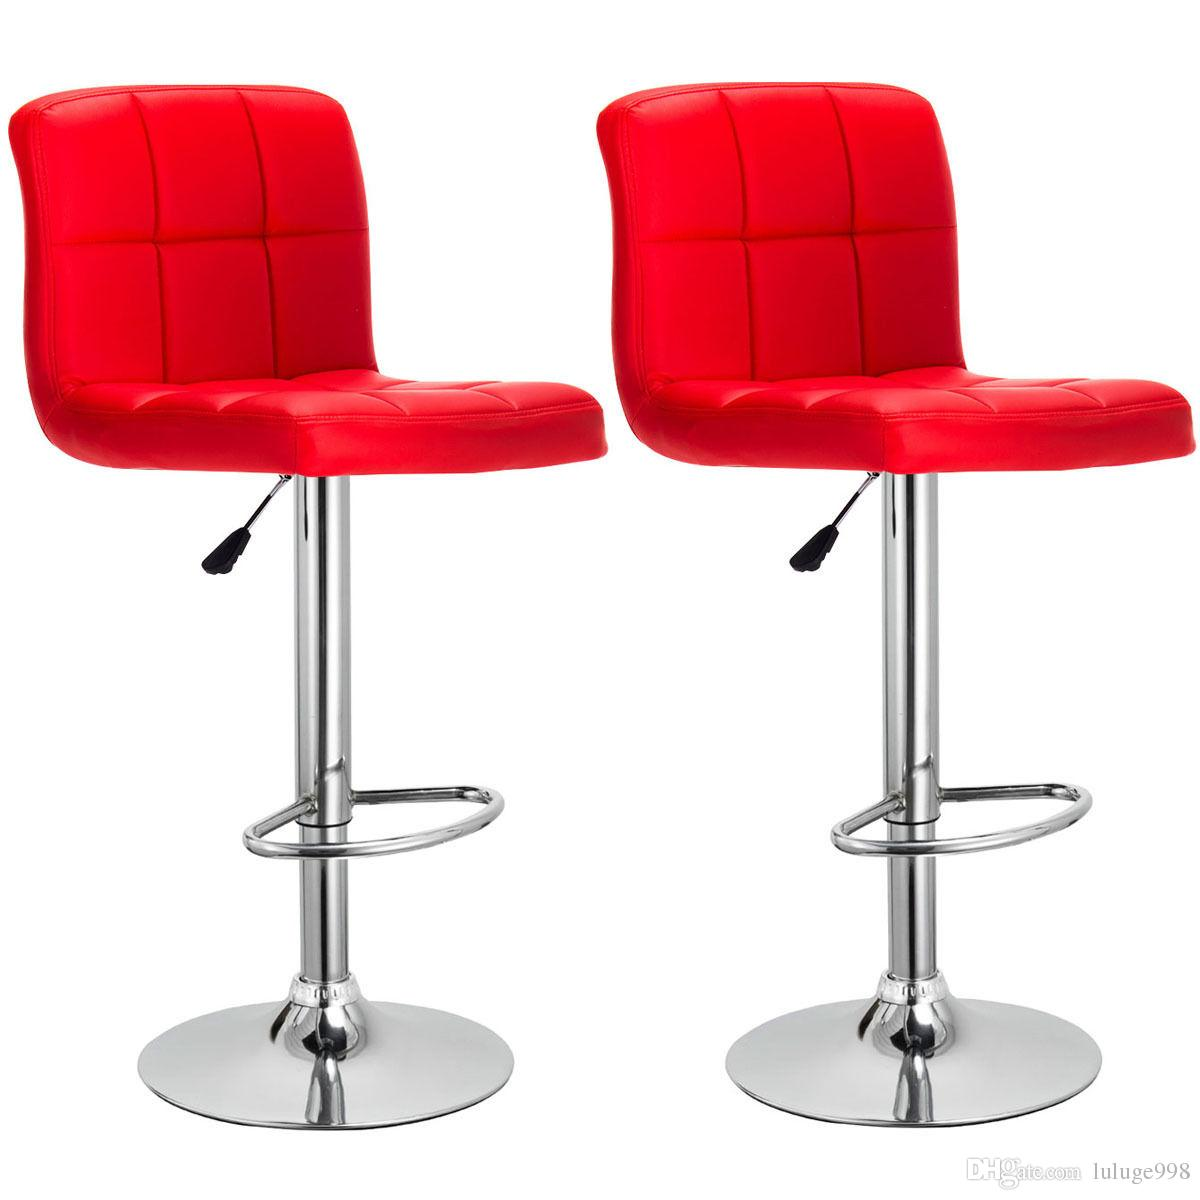 Set Of 2 Bar Stools PU Leather Adjustable Barstool Swivel Pub Chairs Red  New Bar Chair Online With $62.3/Piece On Luluge998u0027s Store | DHgate.com